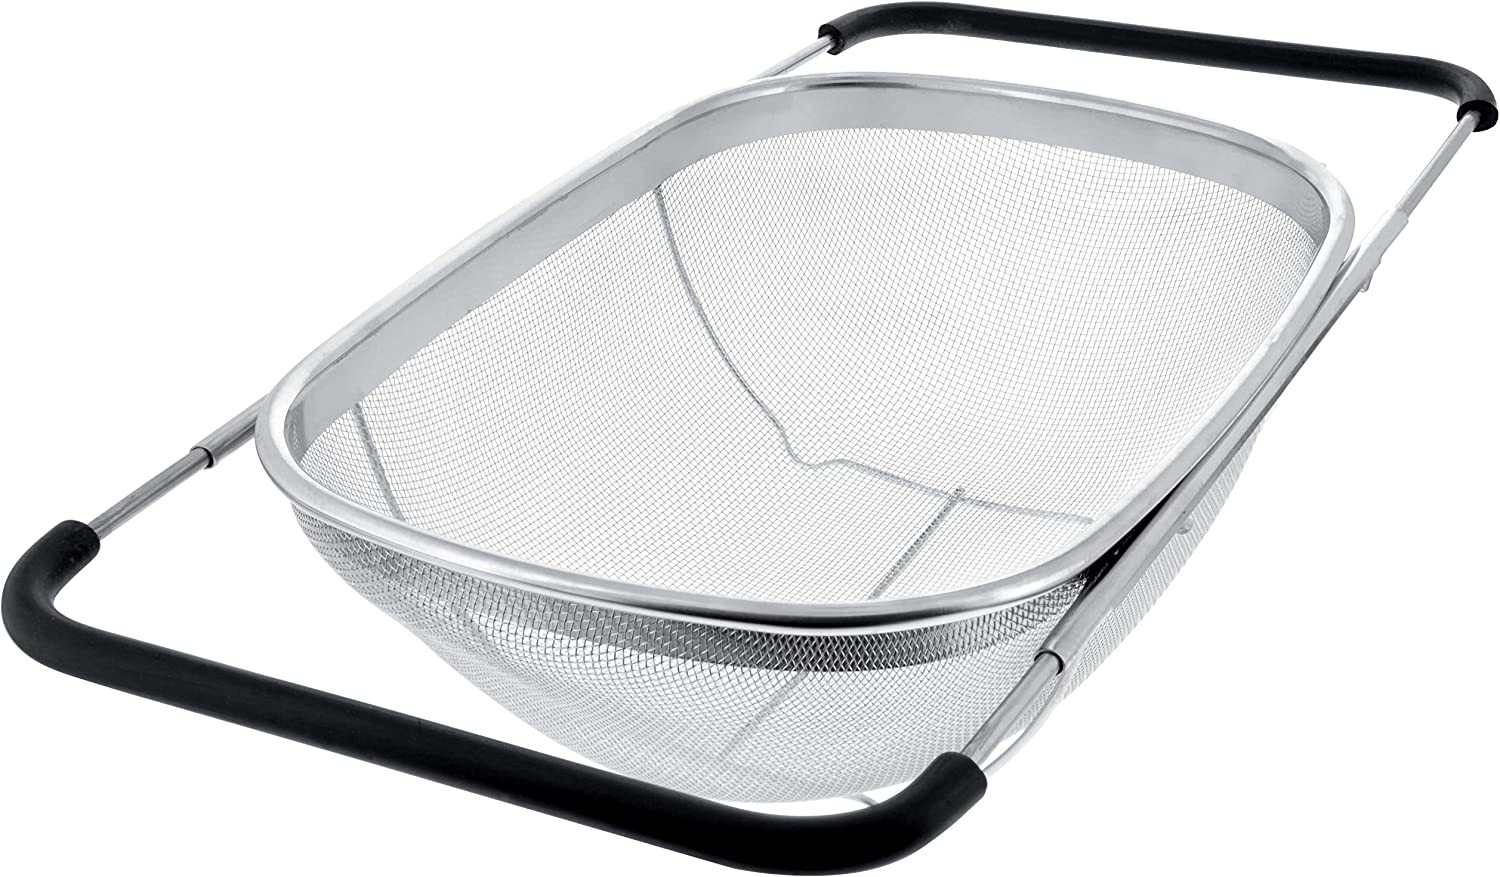 U.S. Kitchen Supply - Premium Quality Over The Sink Stainless Steel Oval Colander with Fine Mesh 6 Quart Strainer Basket & Expandable Rubber Grip Handles - Strain, Drain, Rinse Fruits, Vegetables